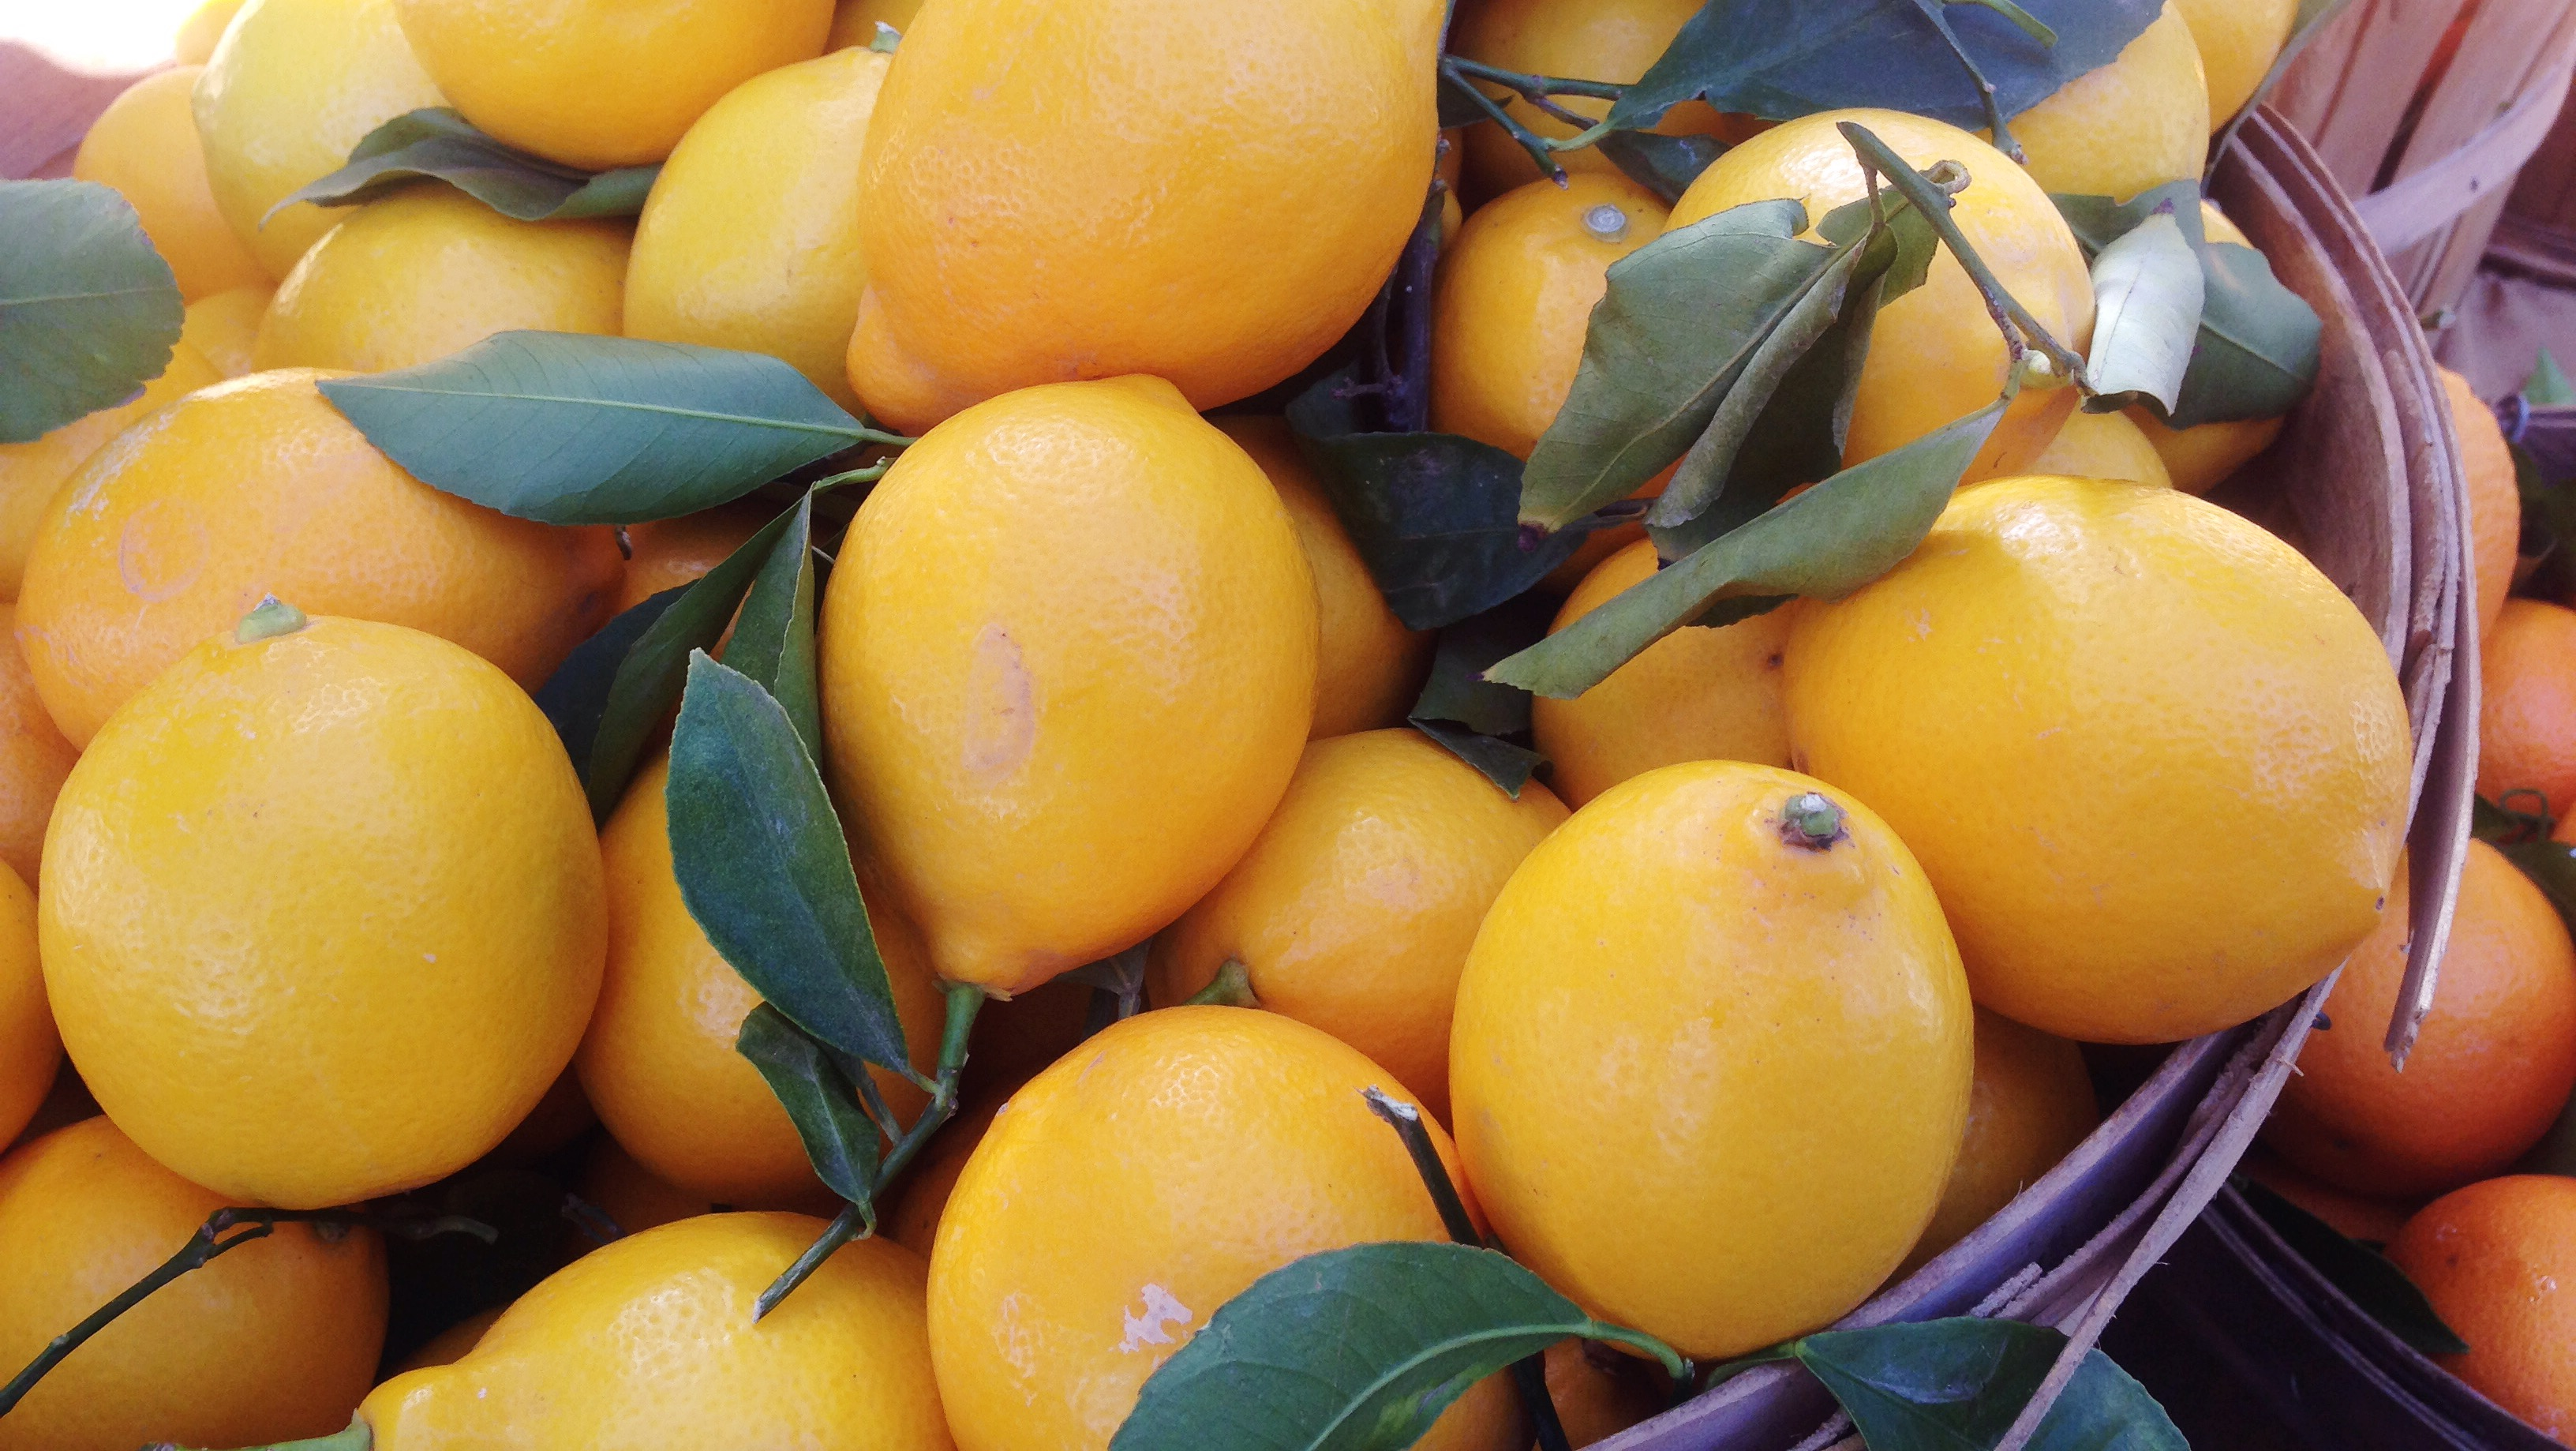 Lemons at Hollywood Farmers Market